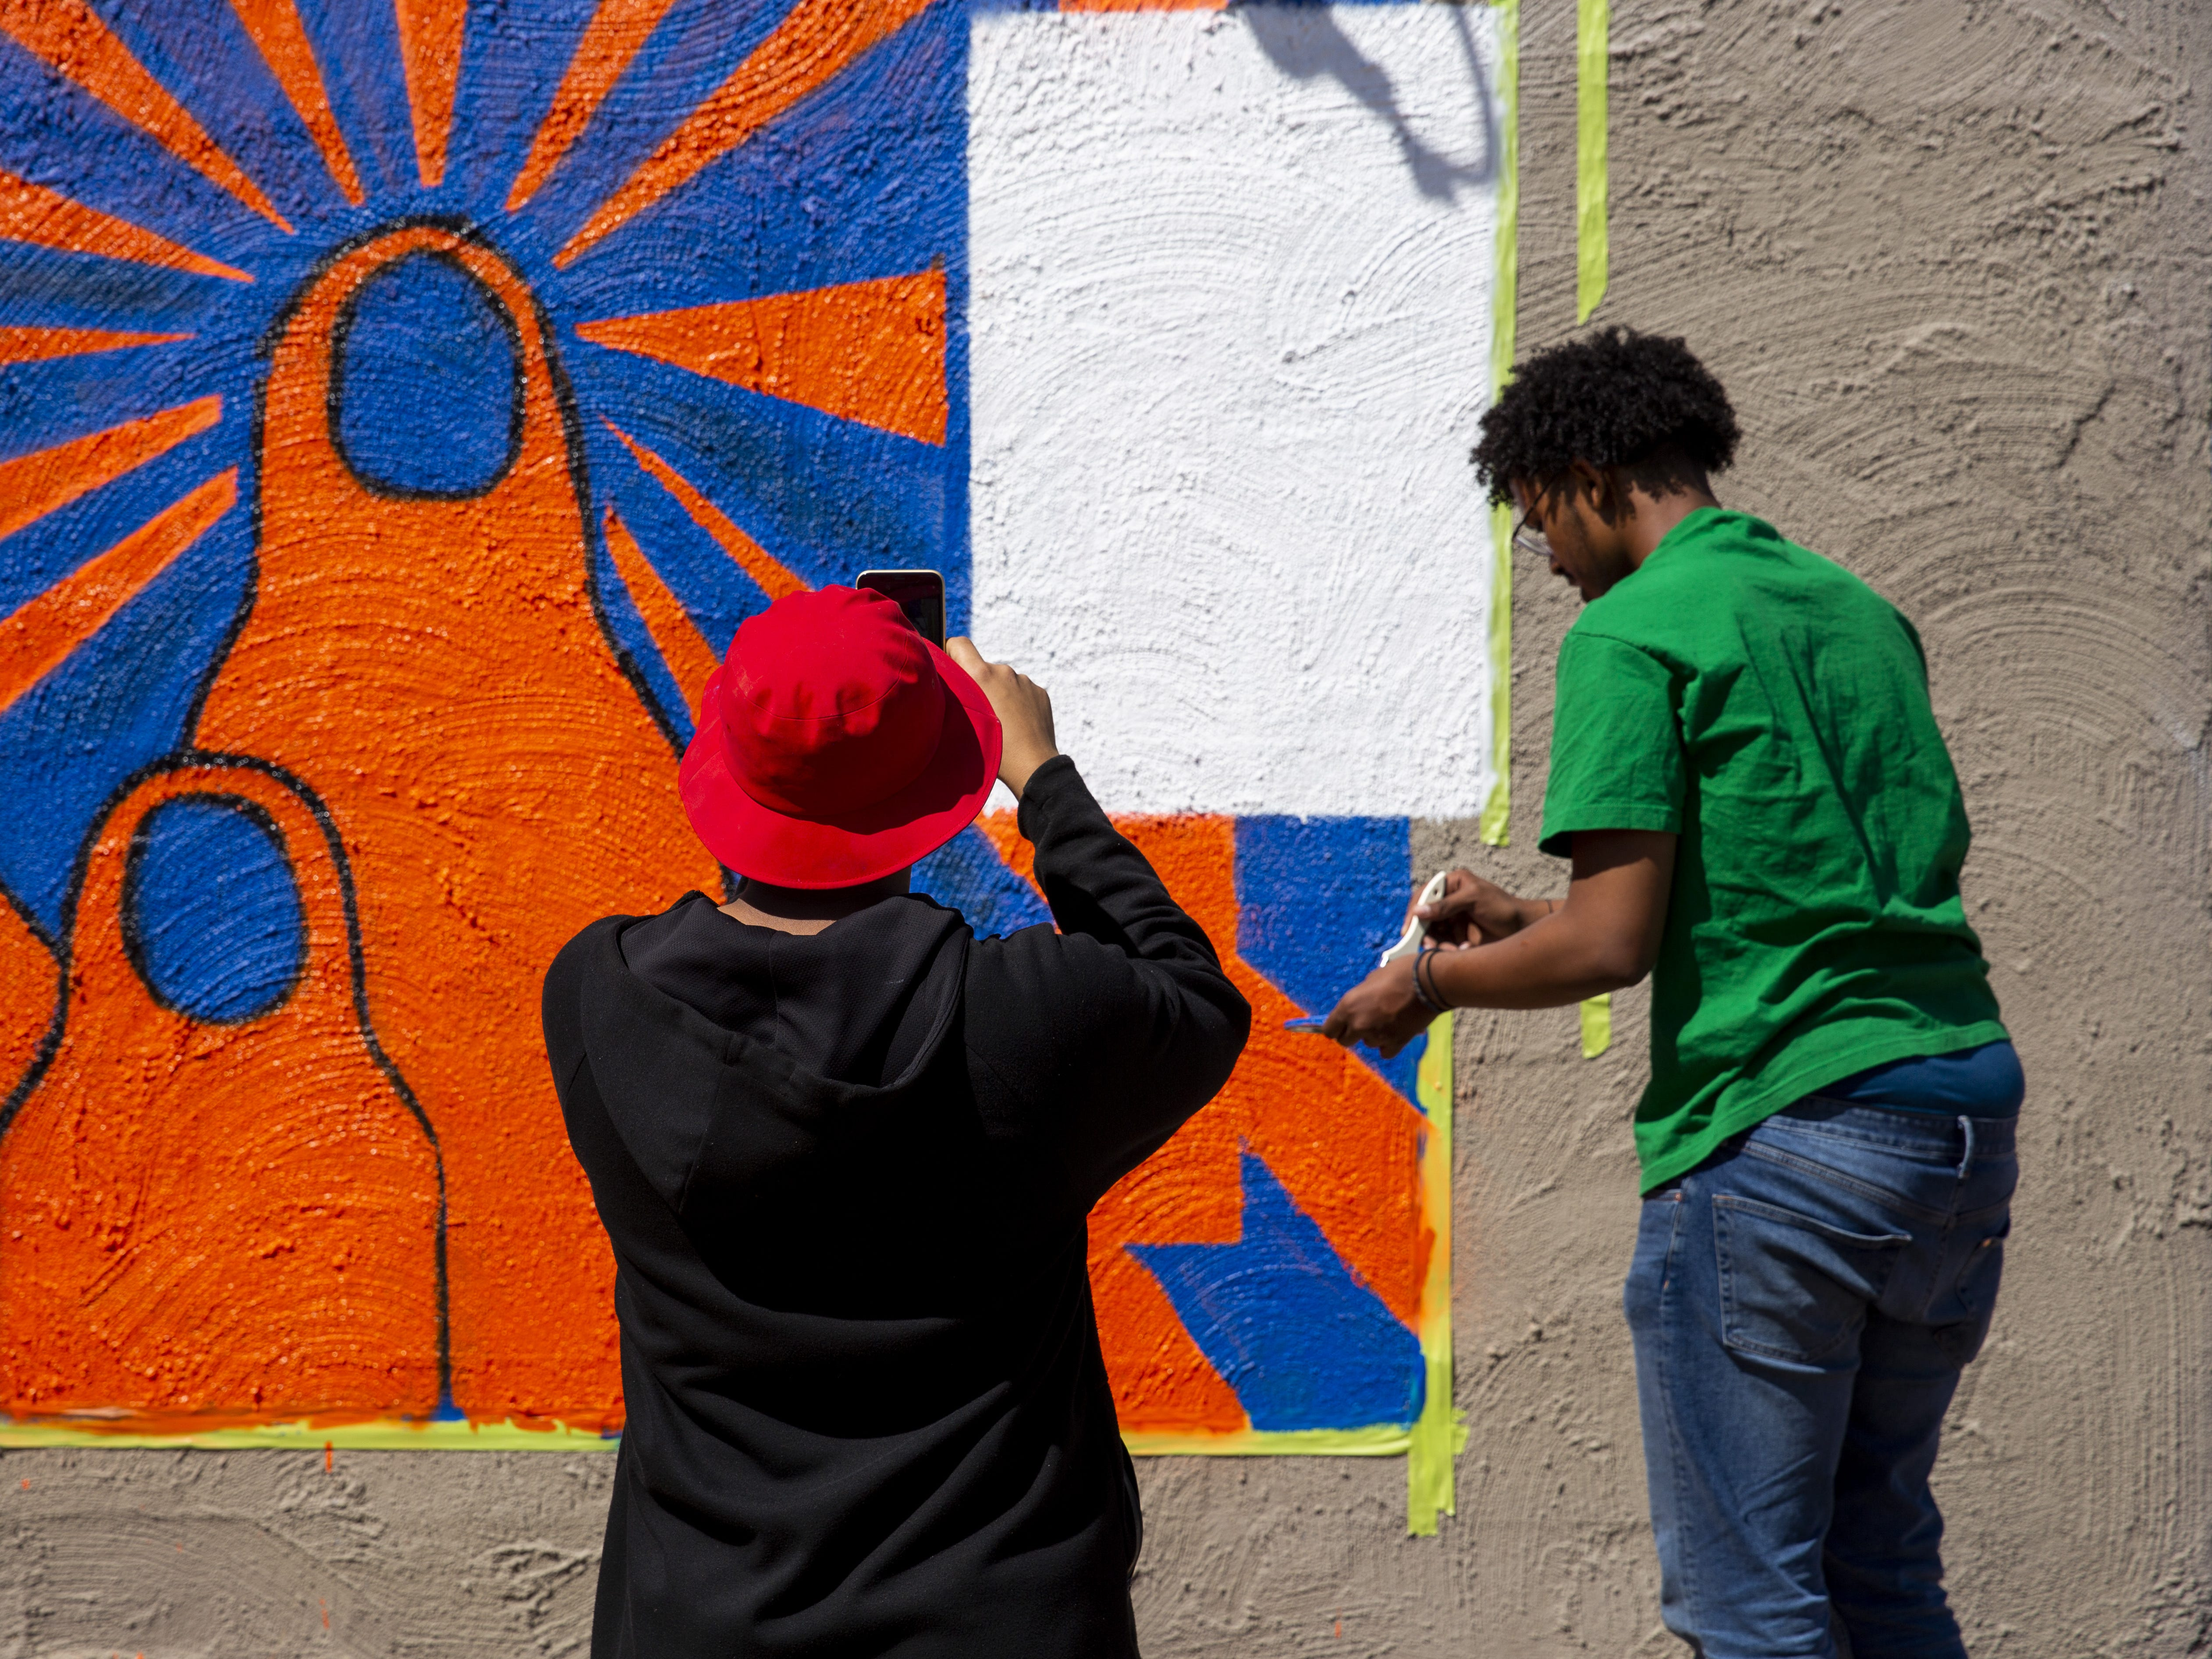 From left, San Diego artists Haadi Mohamed and Yaqub Hussein work on a mural in Phoenix, Ariz. on March 31, 2019.